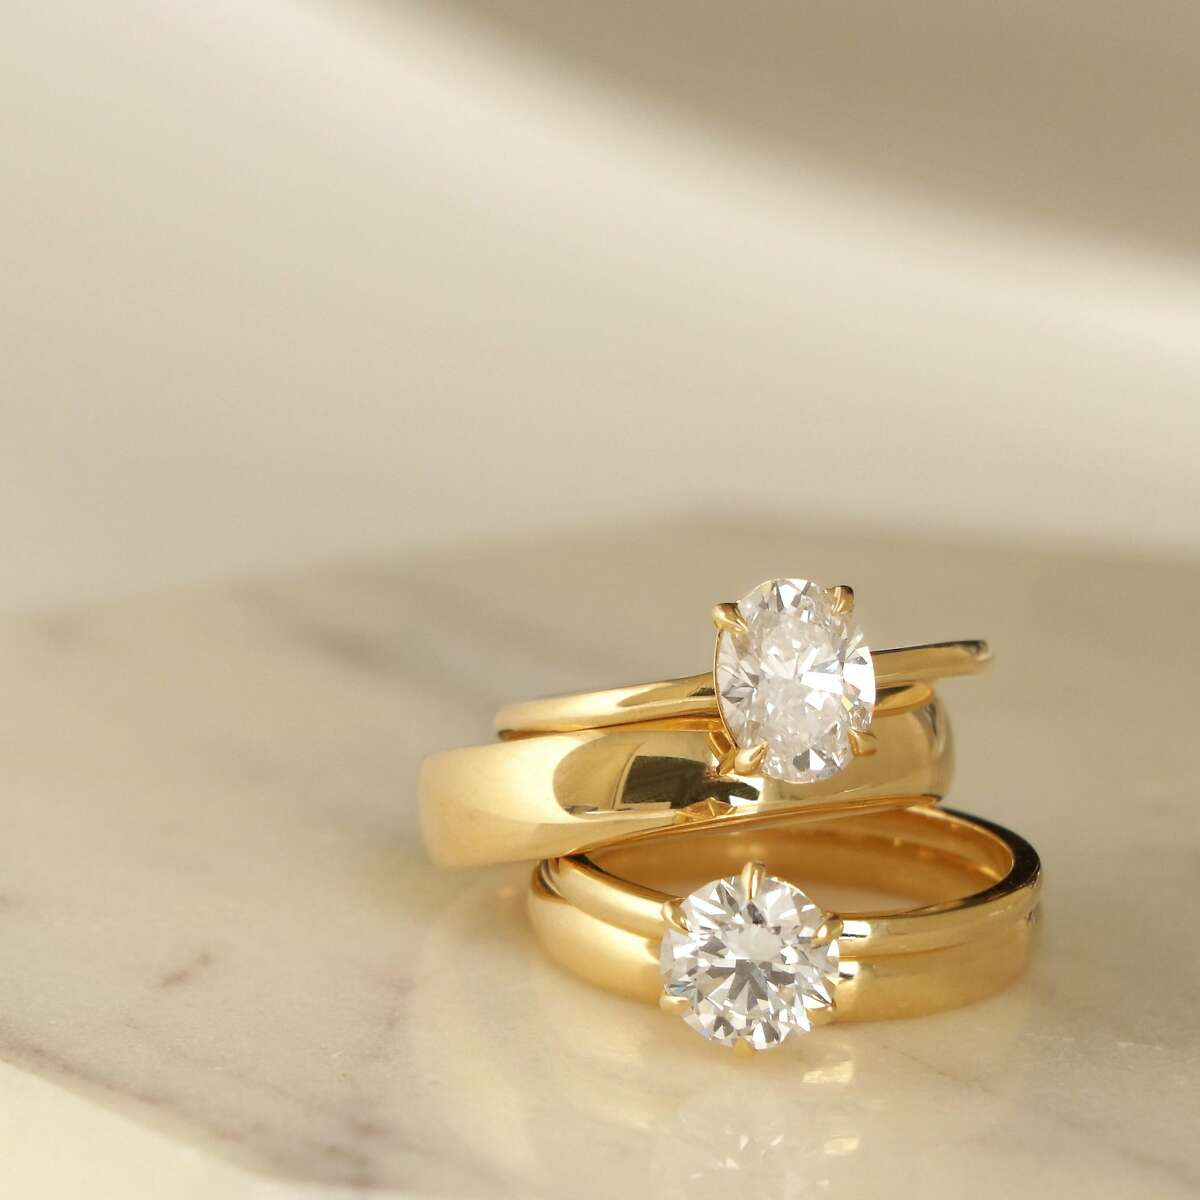 Vrai & Oro, started by Vanessa Stofenmacher, was acquired by Diamond Foundry a year ago. These rings, produced in San Francisco from lab-grown diamonds, are part of the Vrai & Oro Wedding�collection.